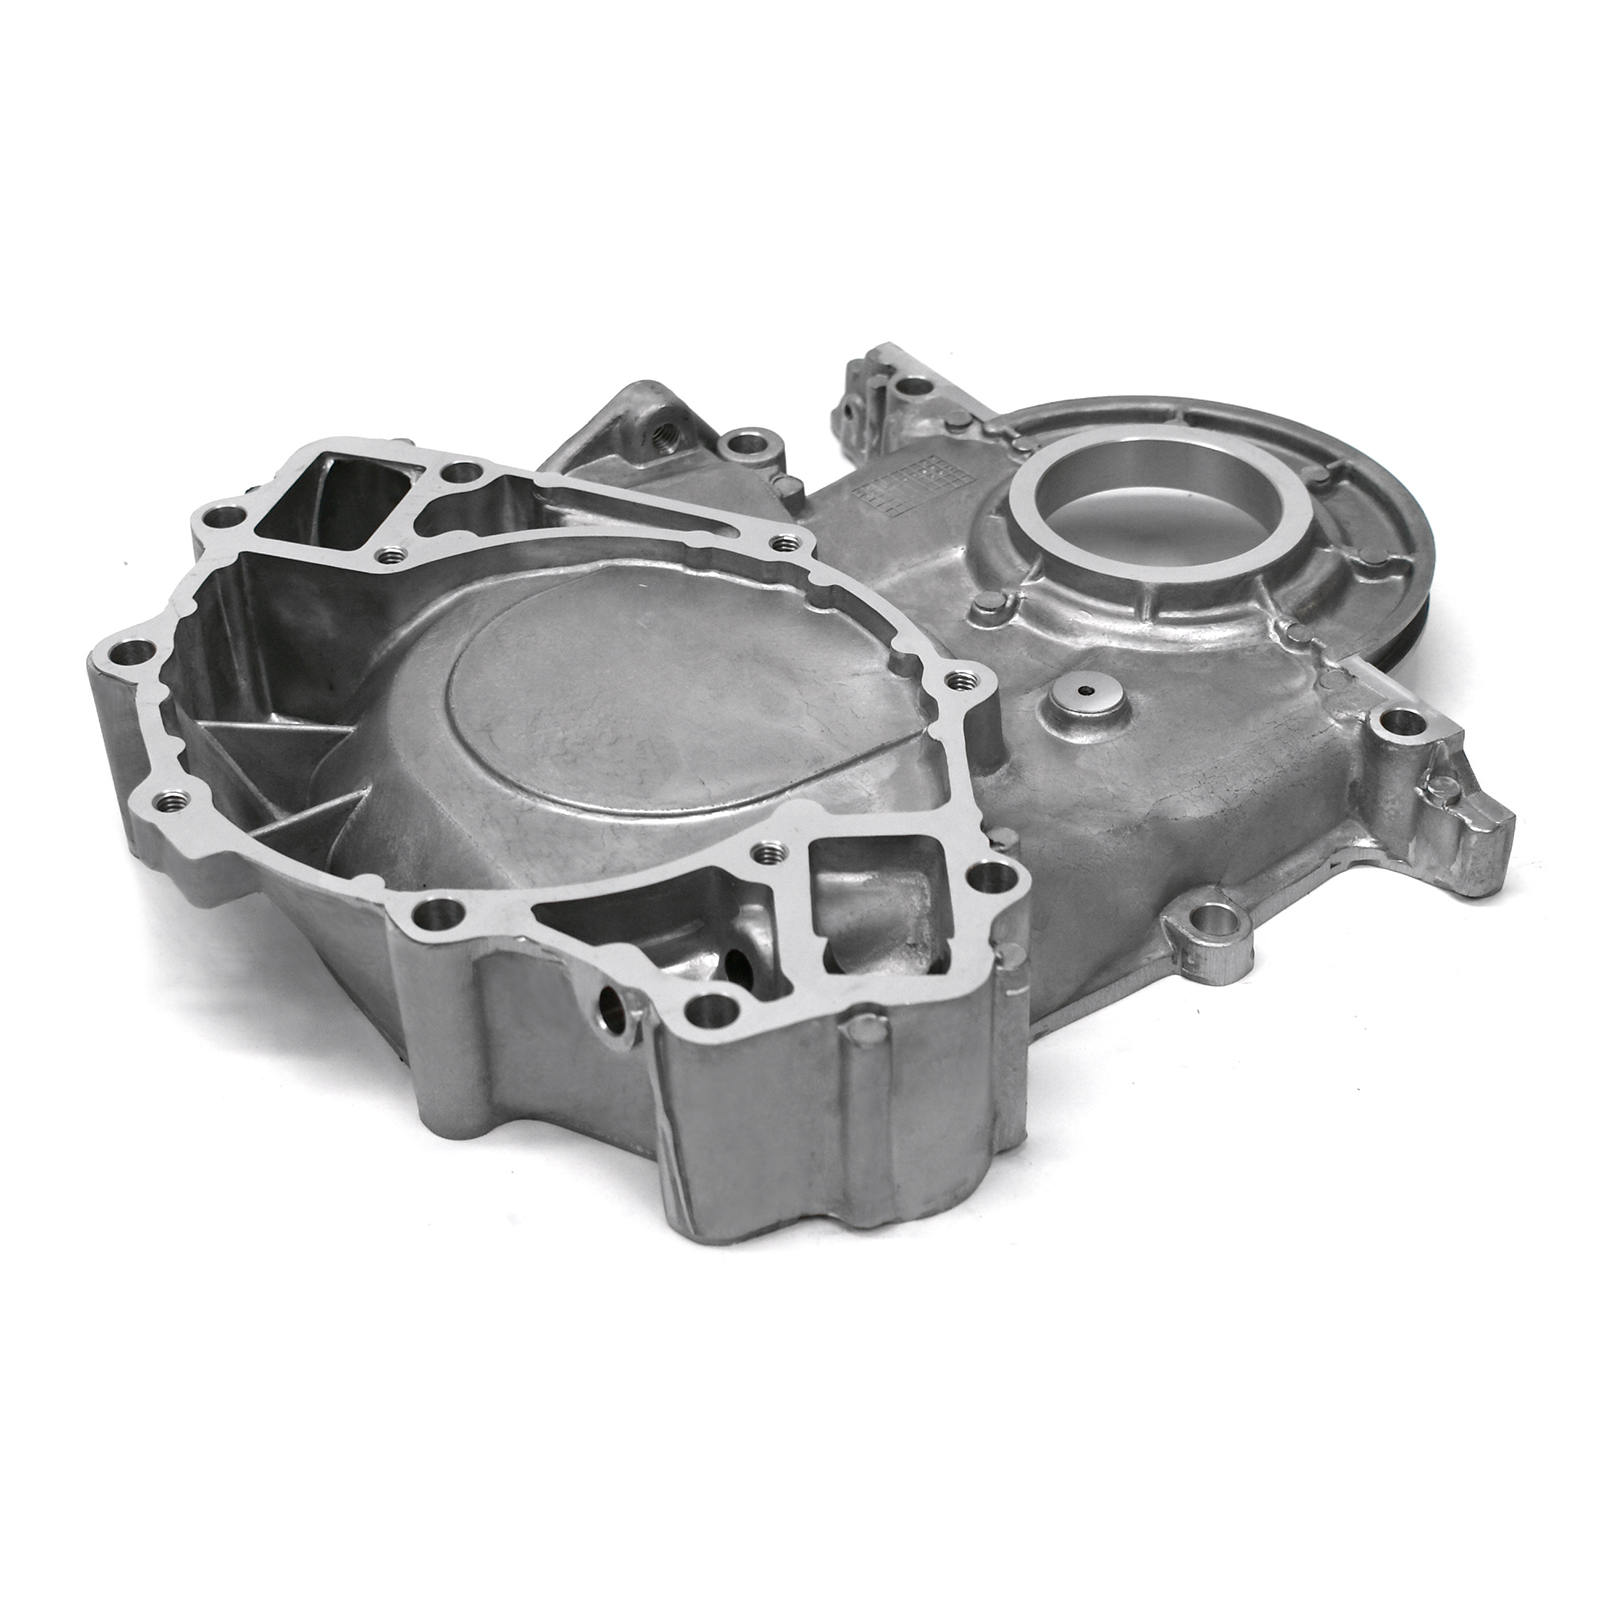 Ford 429 460 1969-97 Aluminum Timing Chain Cover